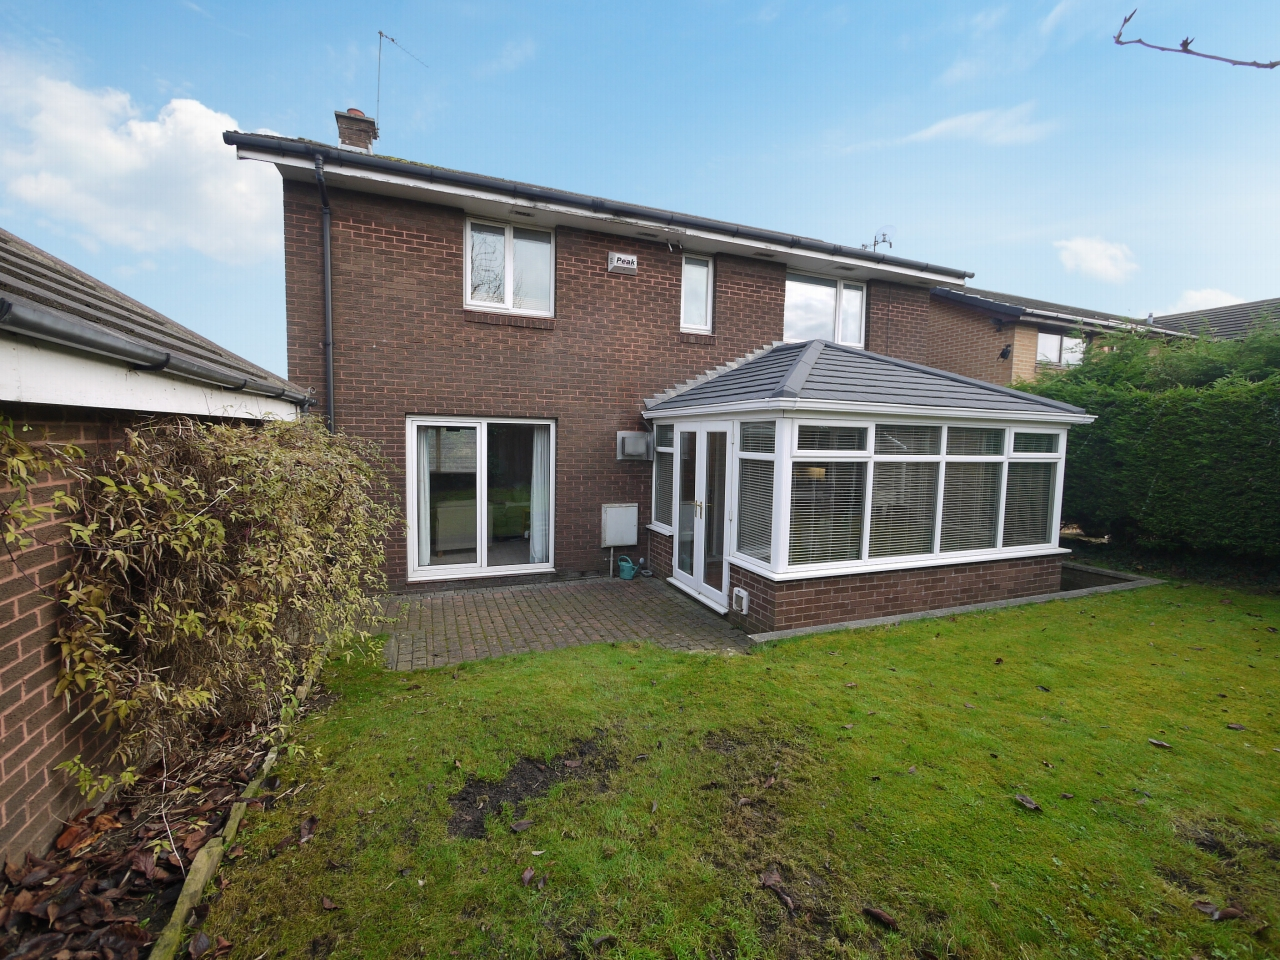 4 bedroom detached house For Sale in Brighouse - Photograph 17.